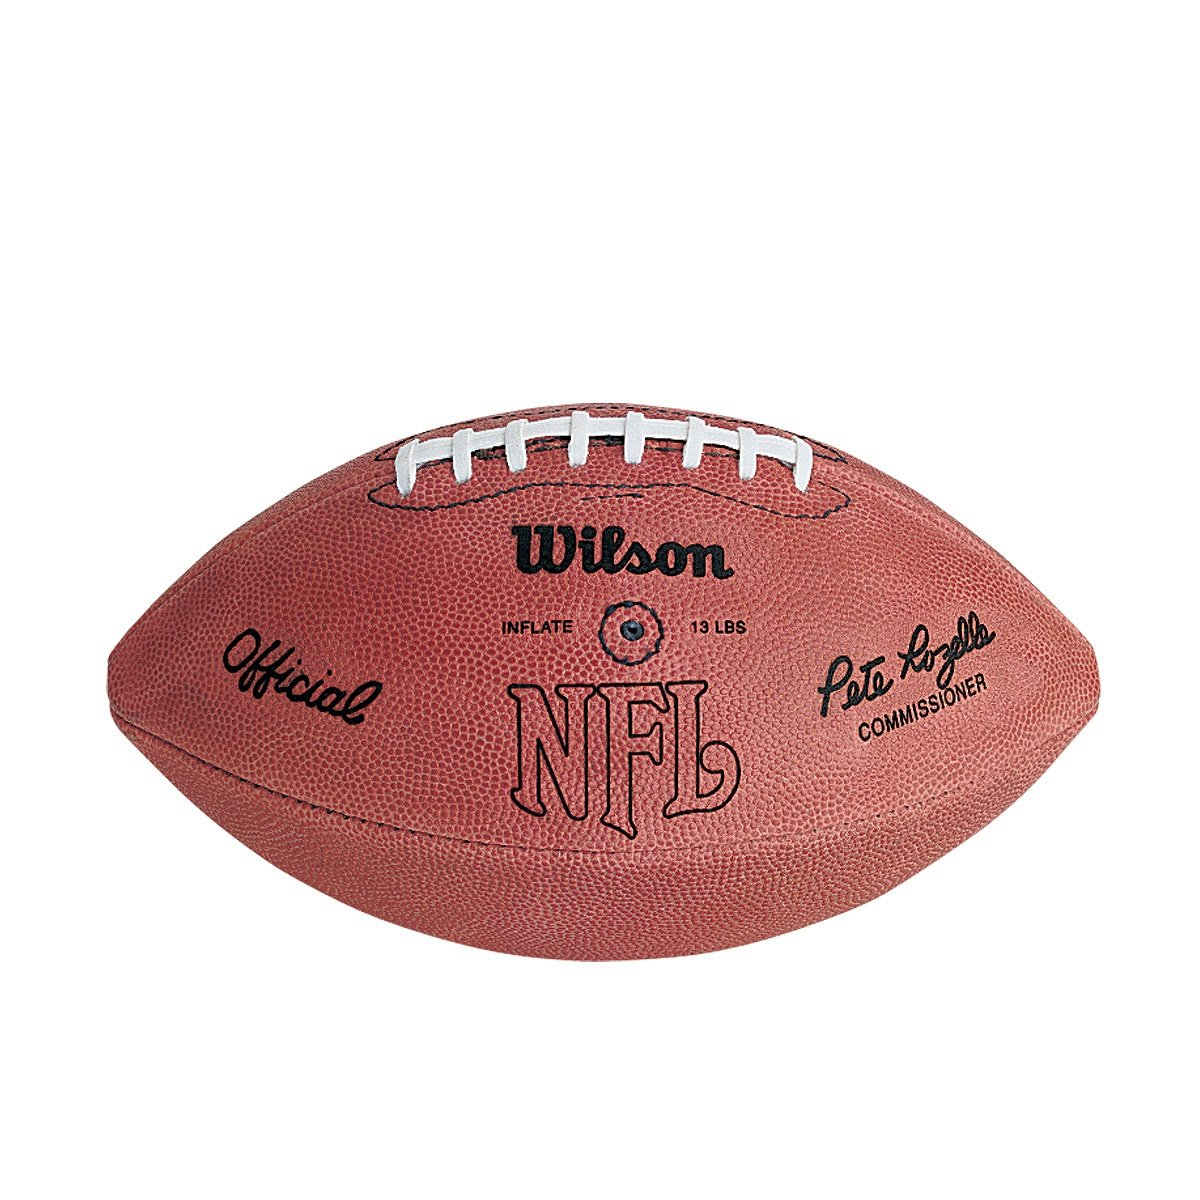 NFL Miami Dolphins, Washington Redskins Wilson Football Super Bowl 7